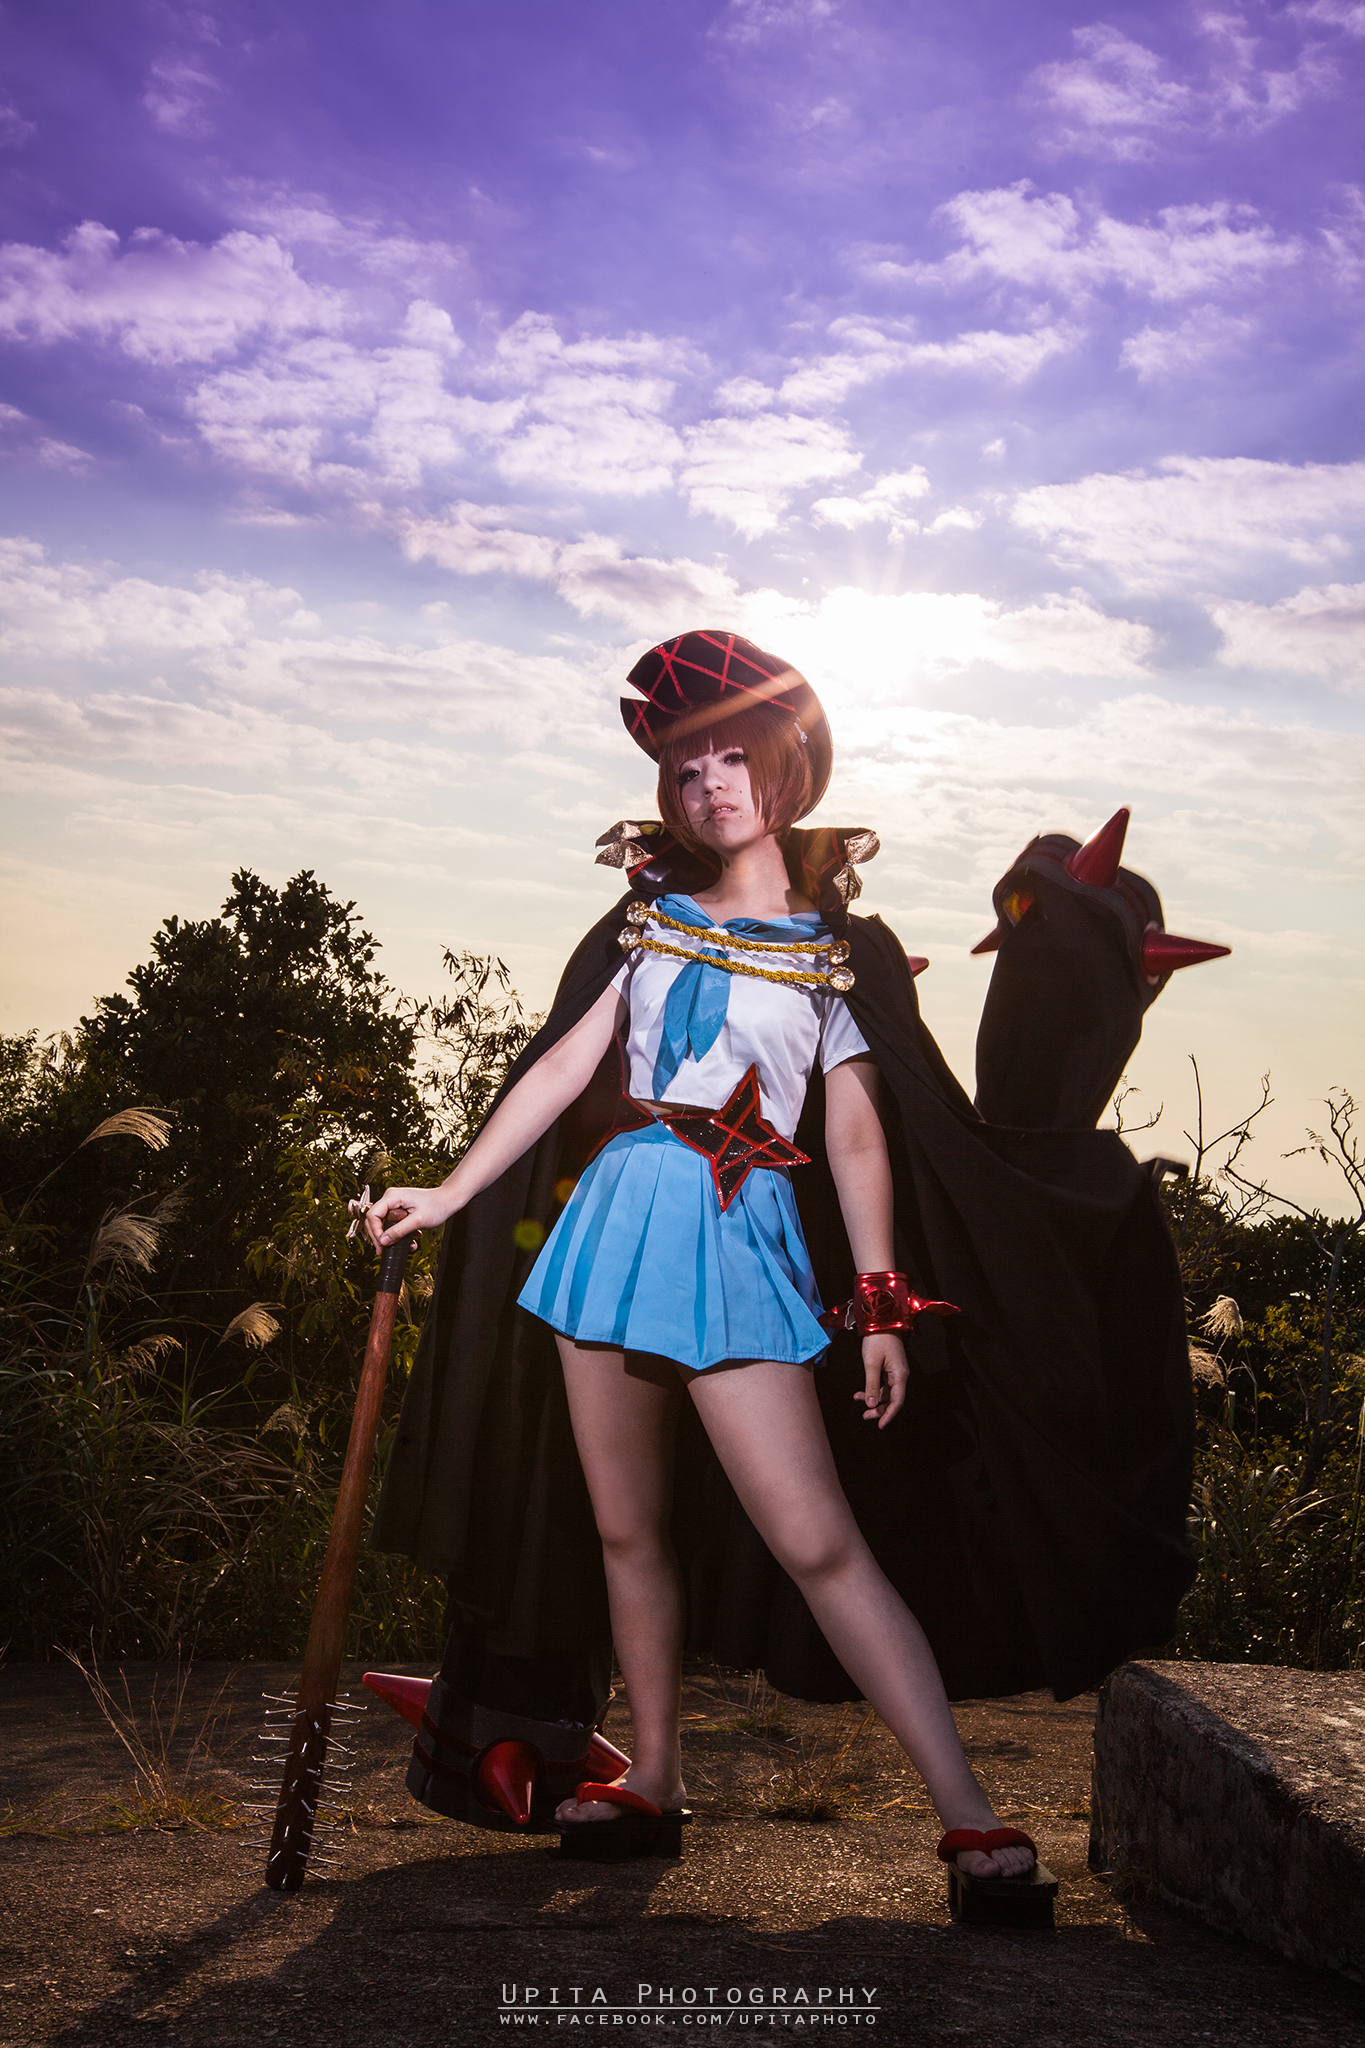 cosplay kill la kill by upita photography people portraits cosplay    Mako Mankanshoku Fight Club Cosplay